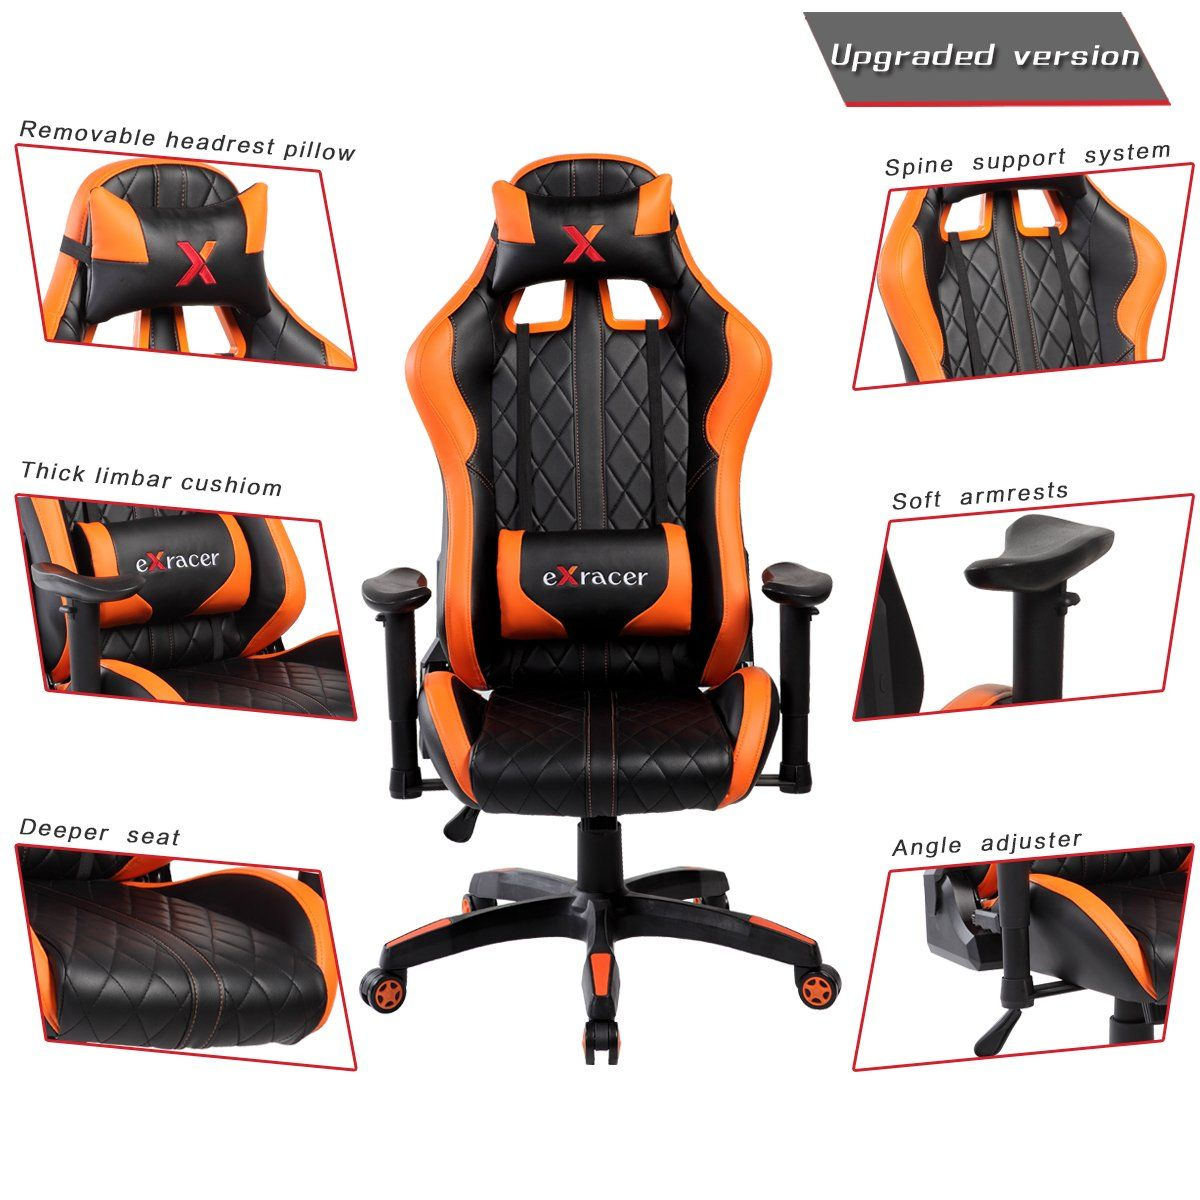 Swivel pu leather gaming chair large size racing chair racing style